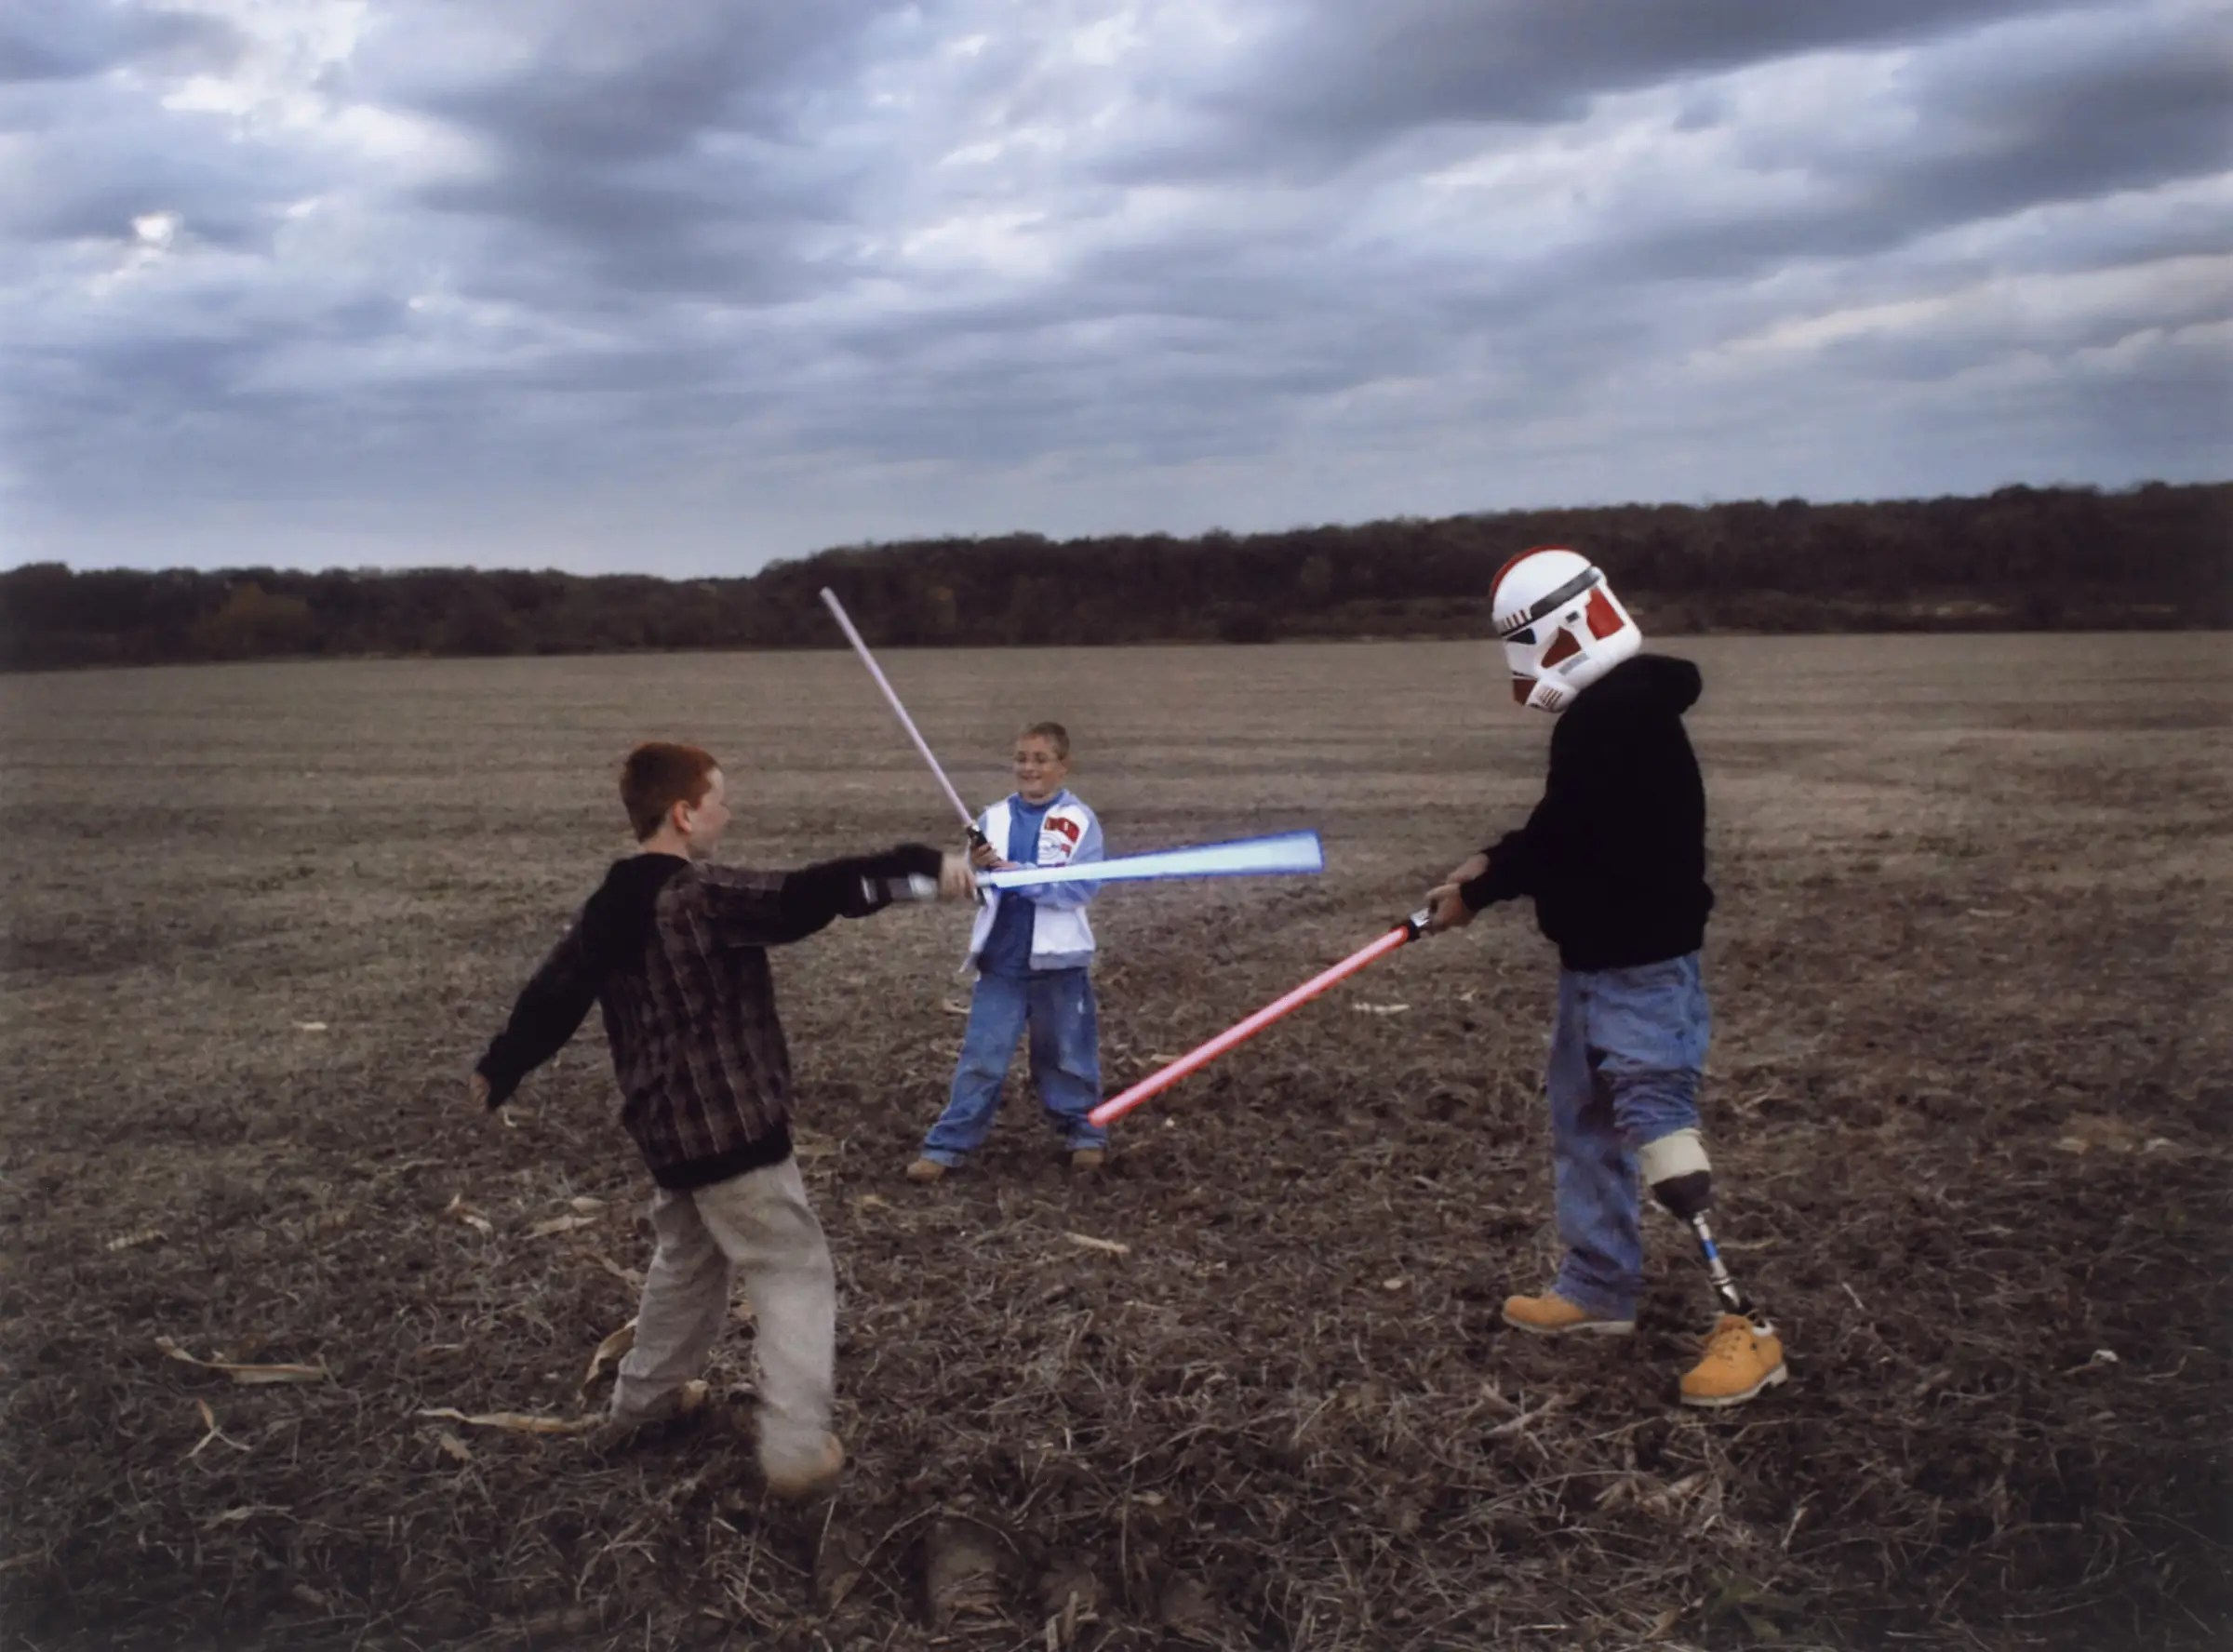 Raymond Hubbard, an Iraq War veteran with a prosthetic leg, puts on a Star Wars stormtrooper's helmet and engages his sons in a light-saber battle. His father was similarly injured in Vietnam.